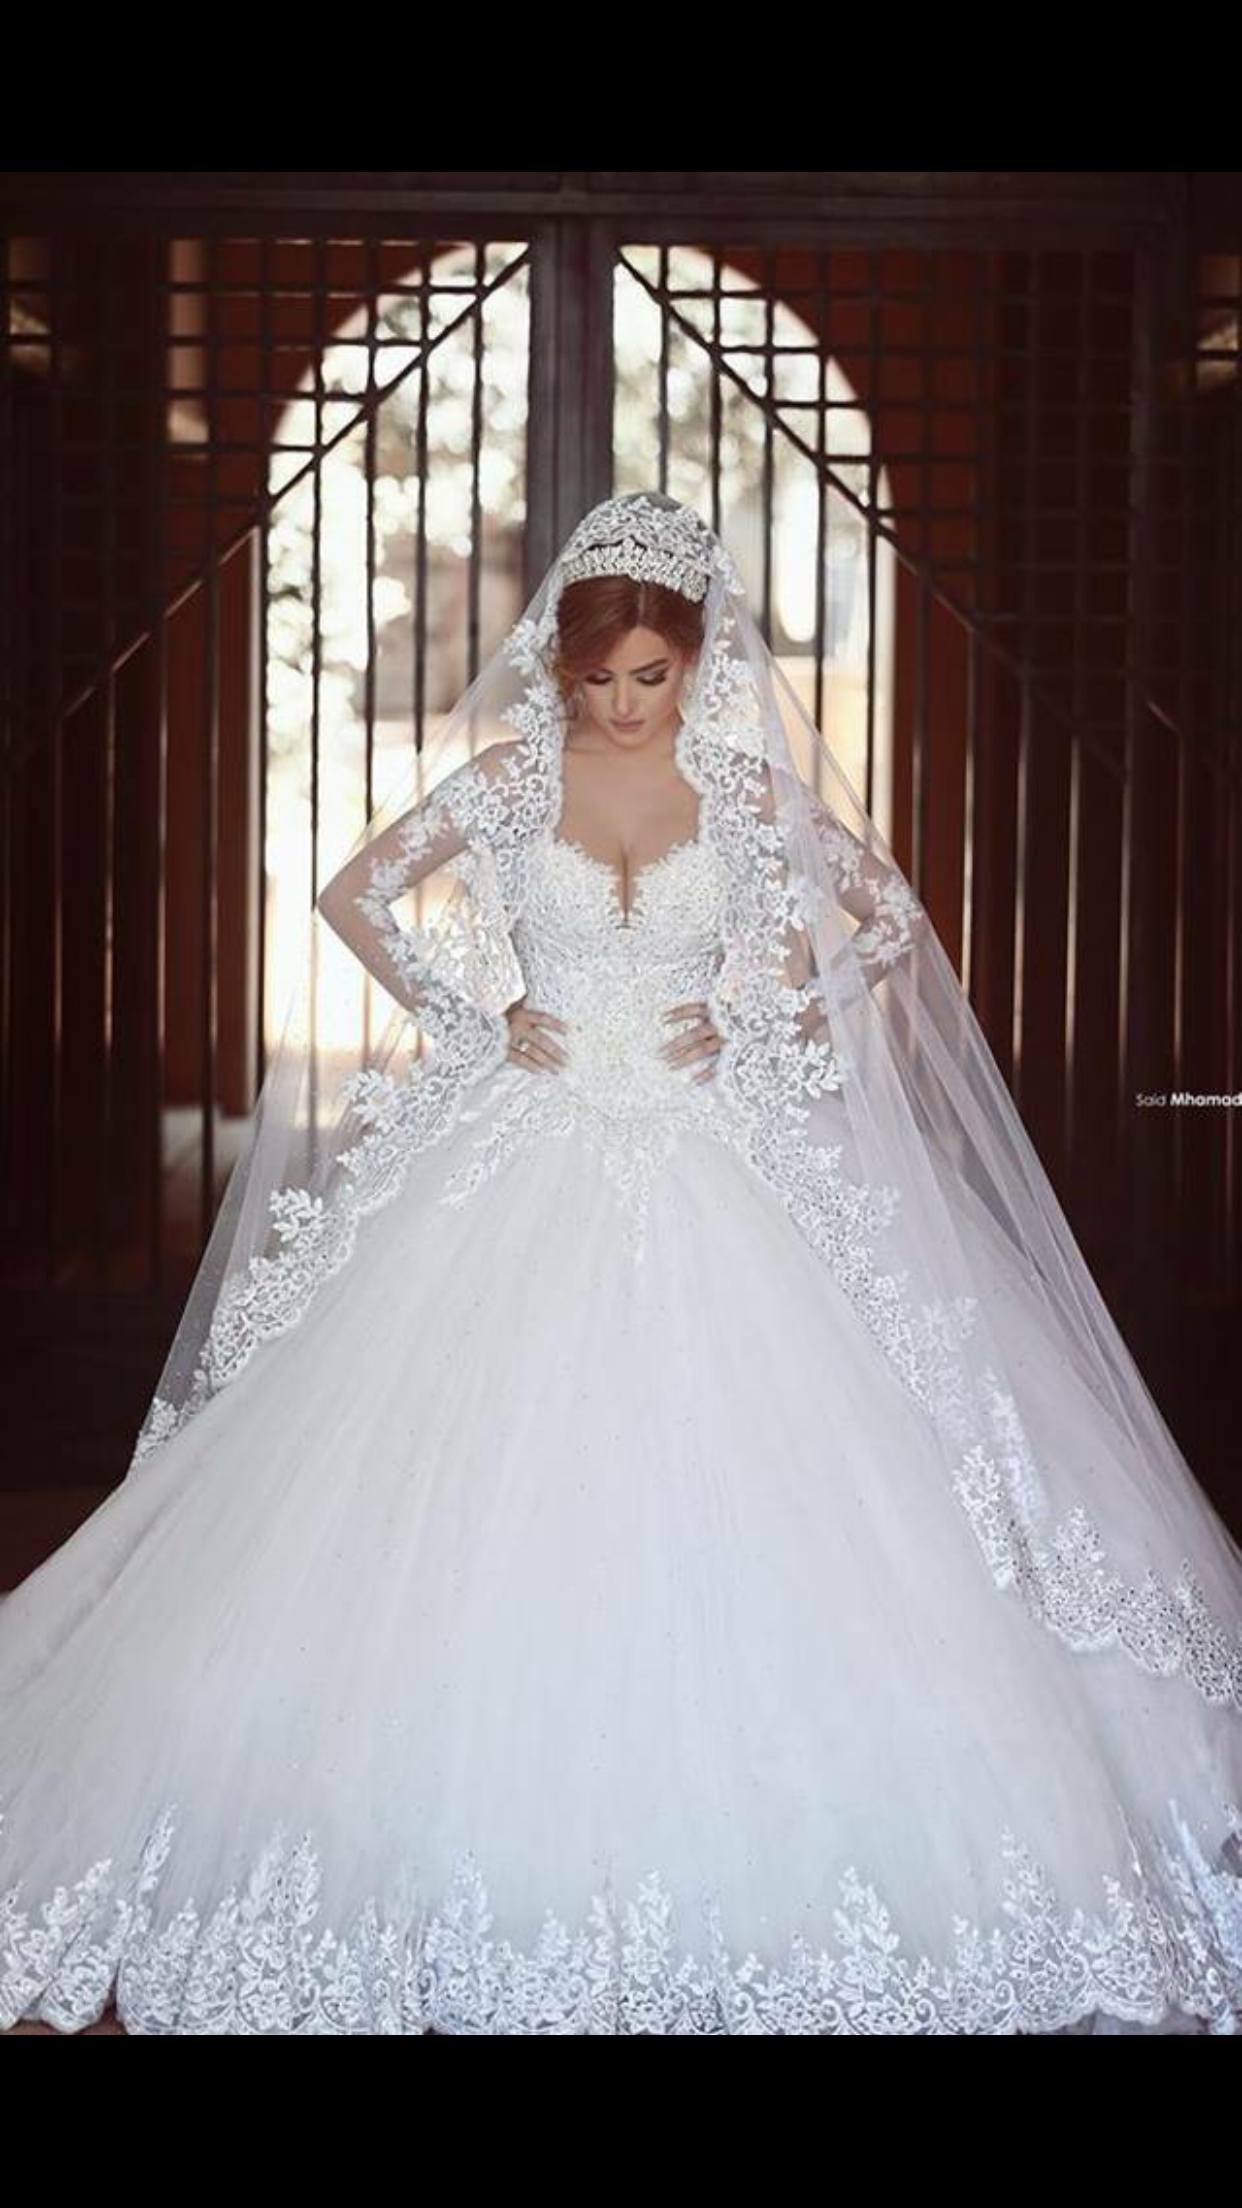 White lace wedding dress with sleeves  Perfection  Dream Wedding  Pinterest  Dream wedding and Wedding